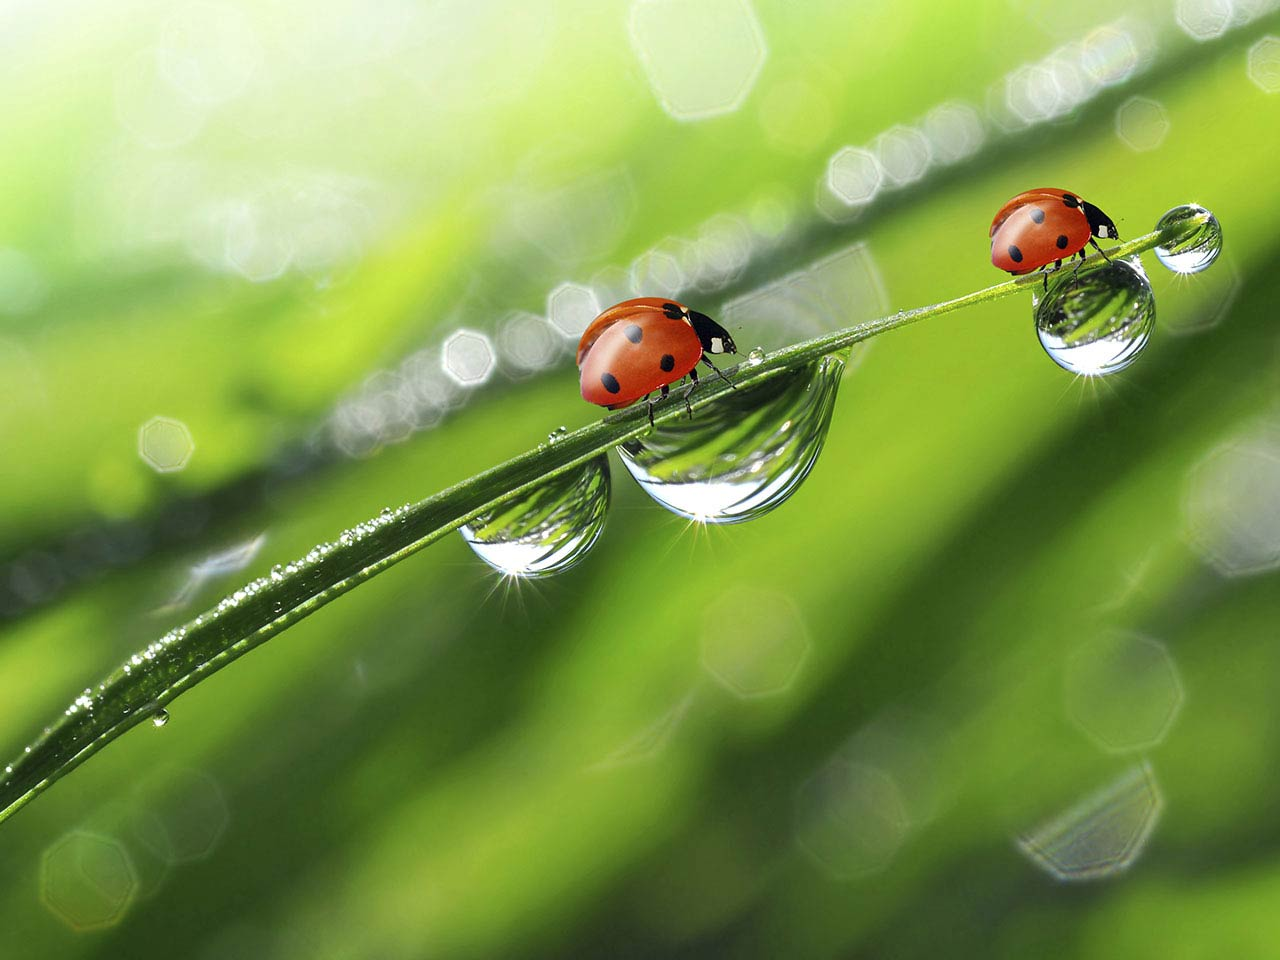 Ladybird sitting on leaf with dewdrops